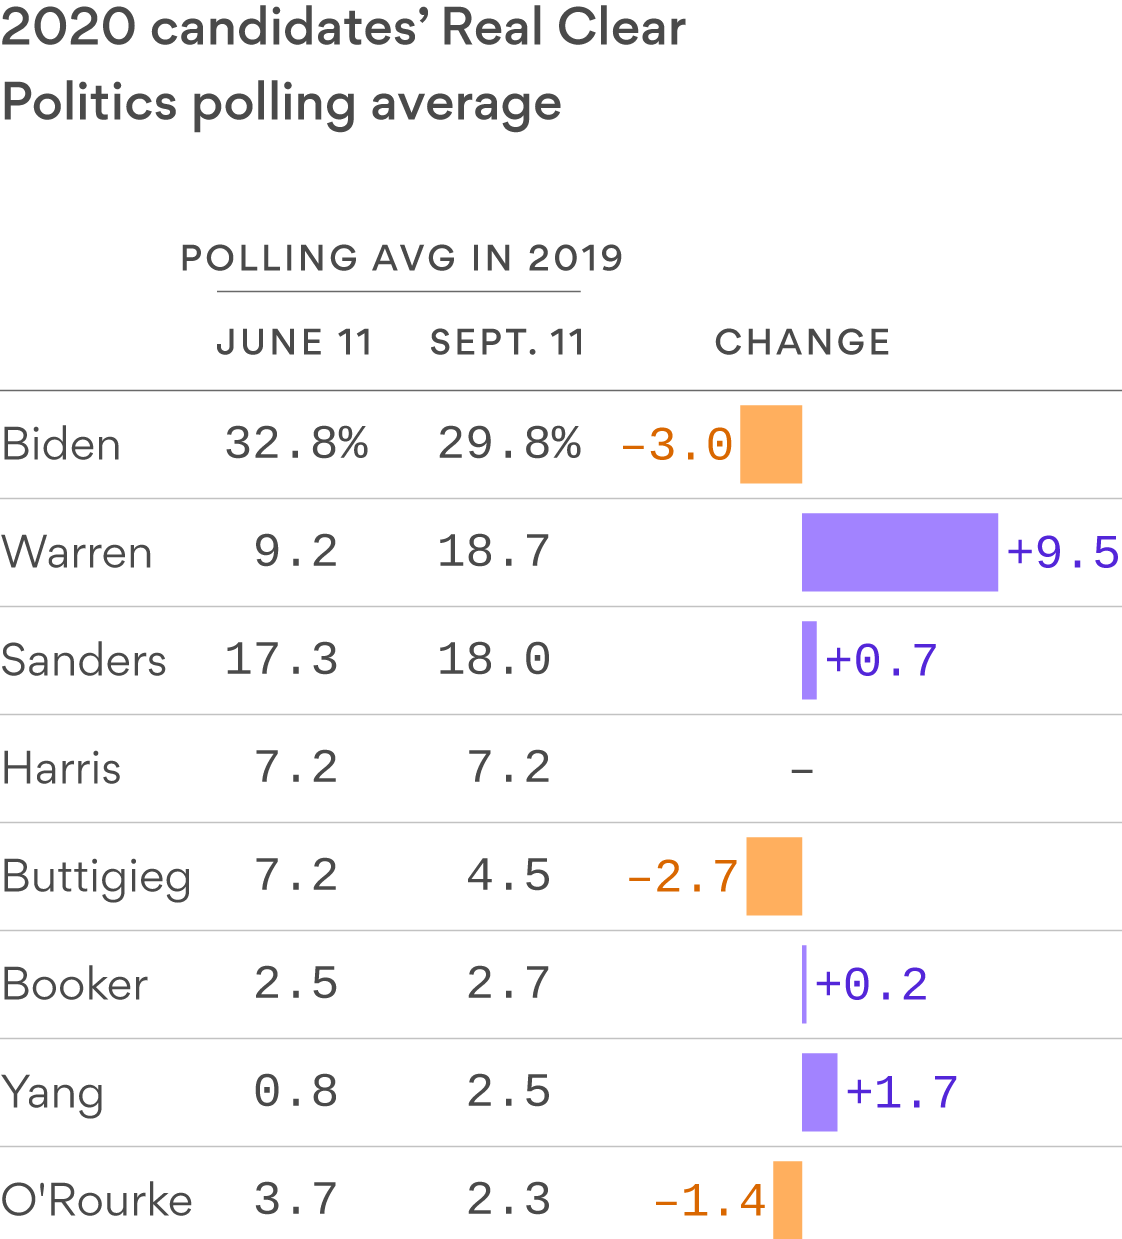 Elizabeth Warren has been the only big winner in polling so far